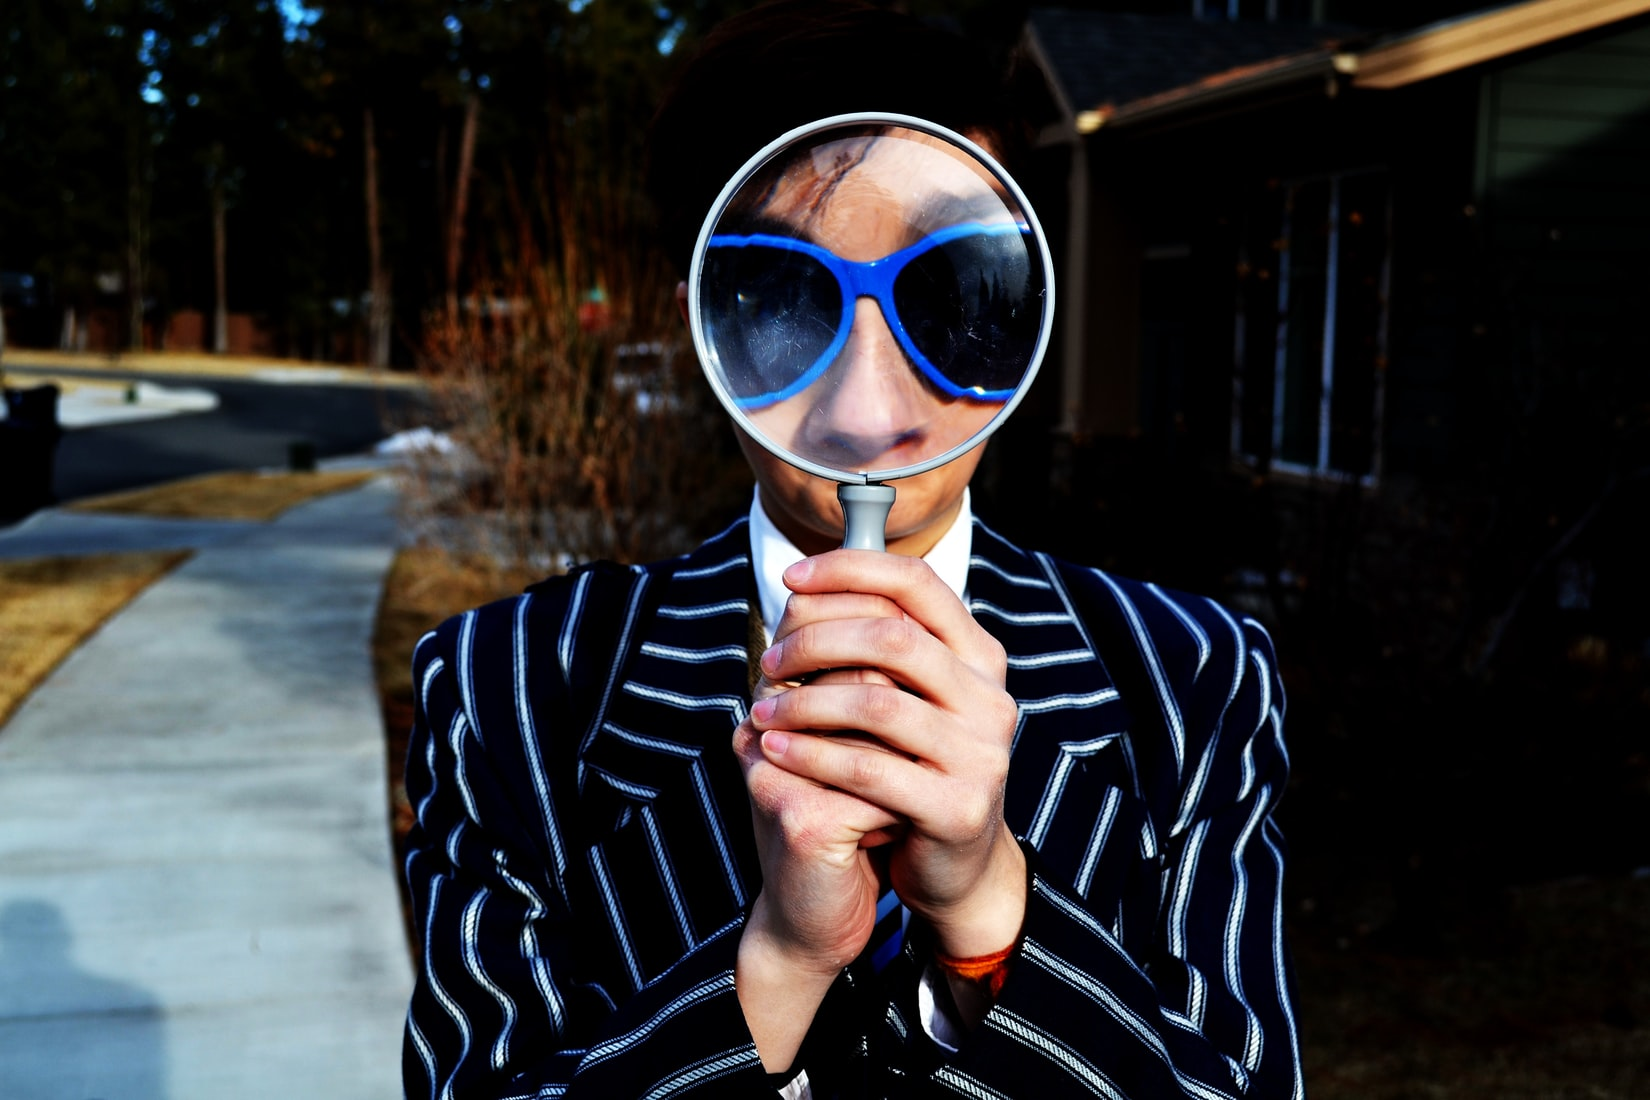 person holding a magnifying glass